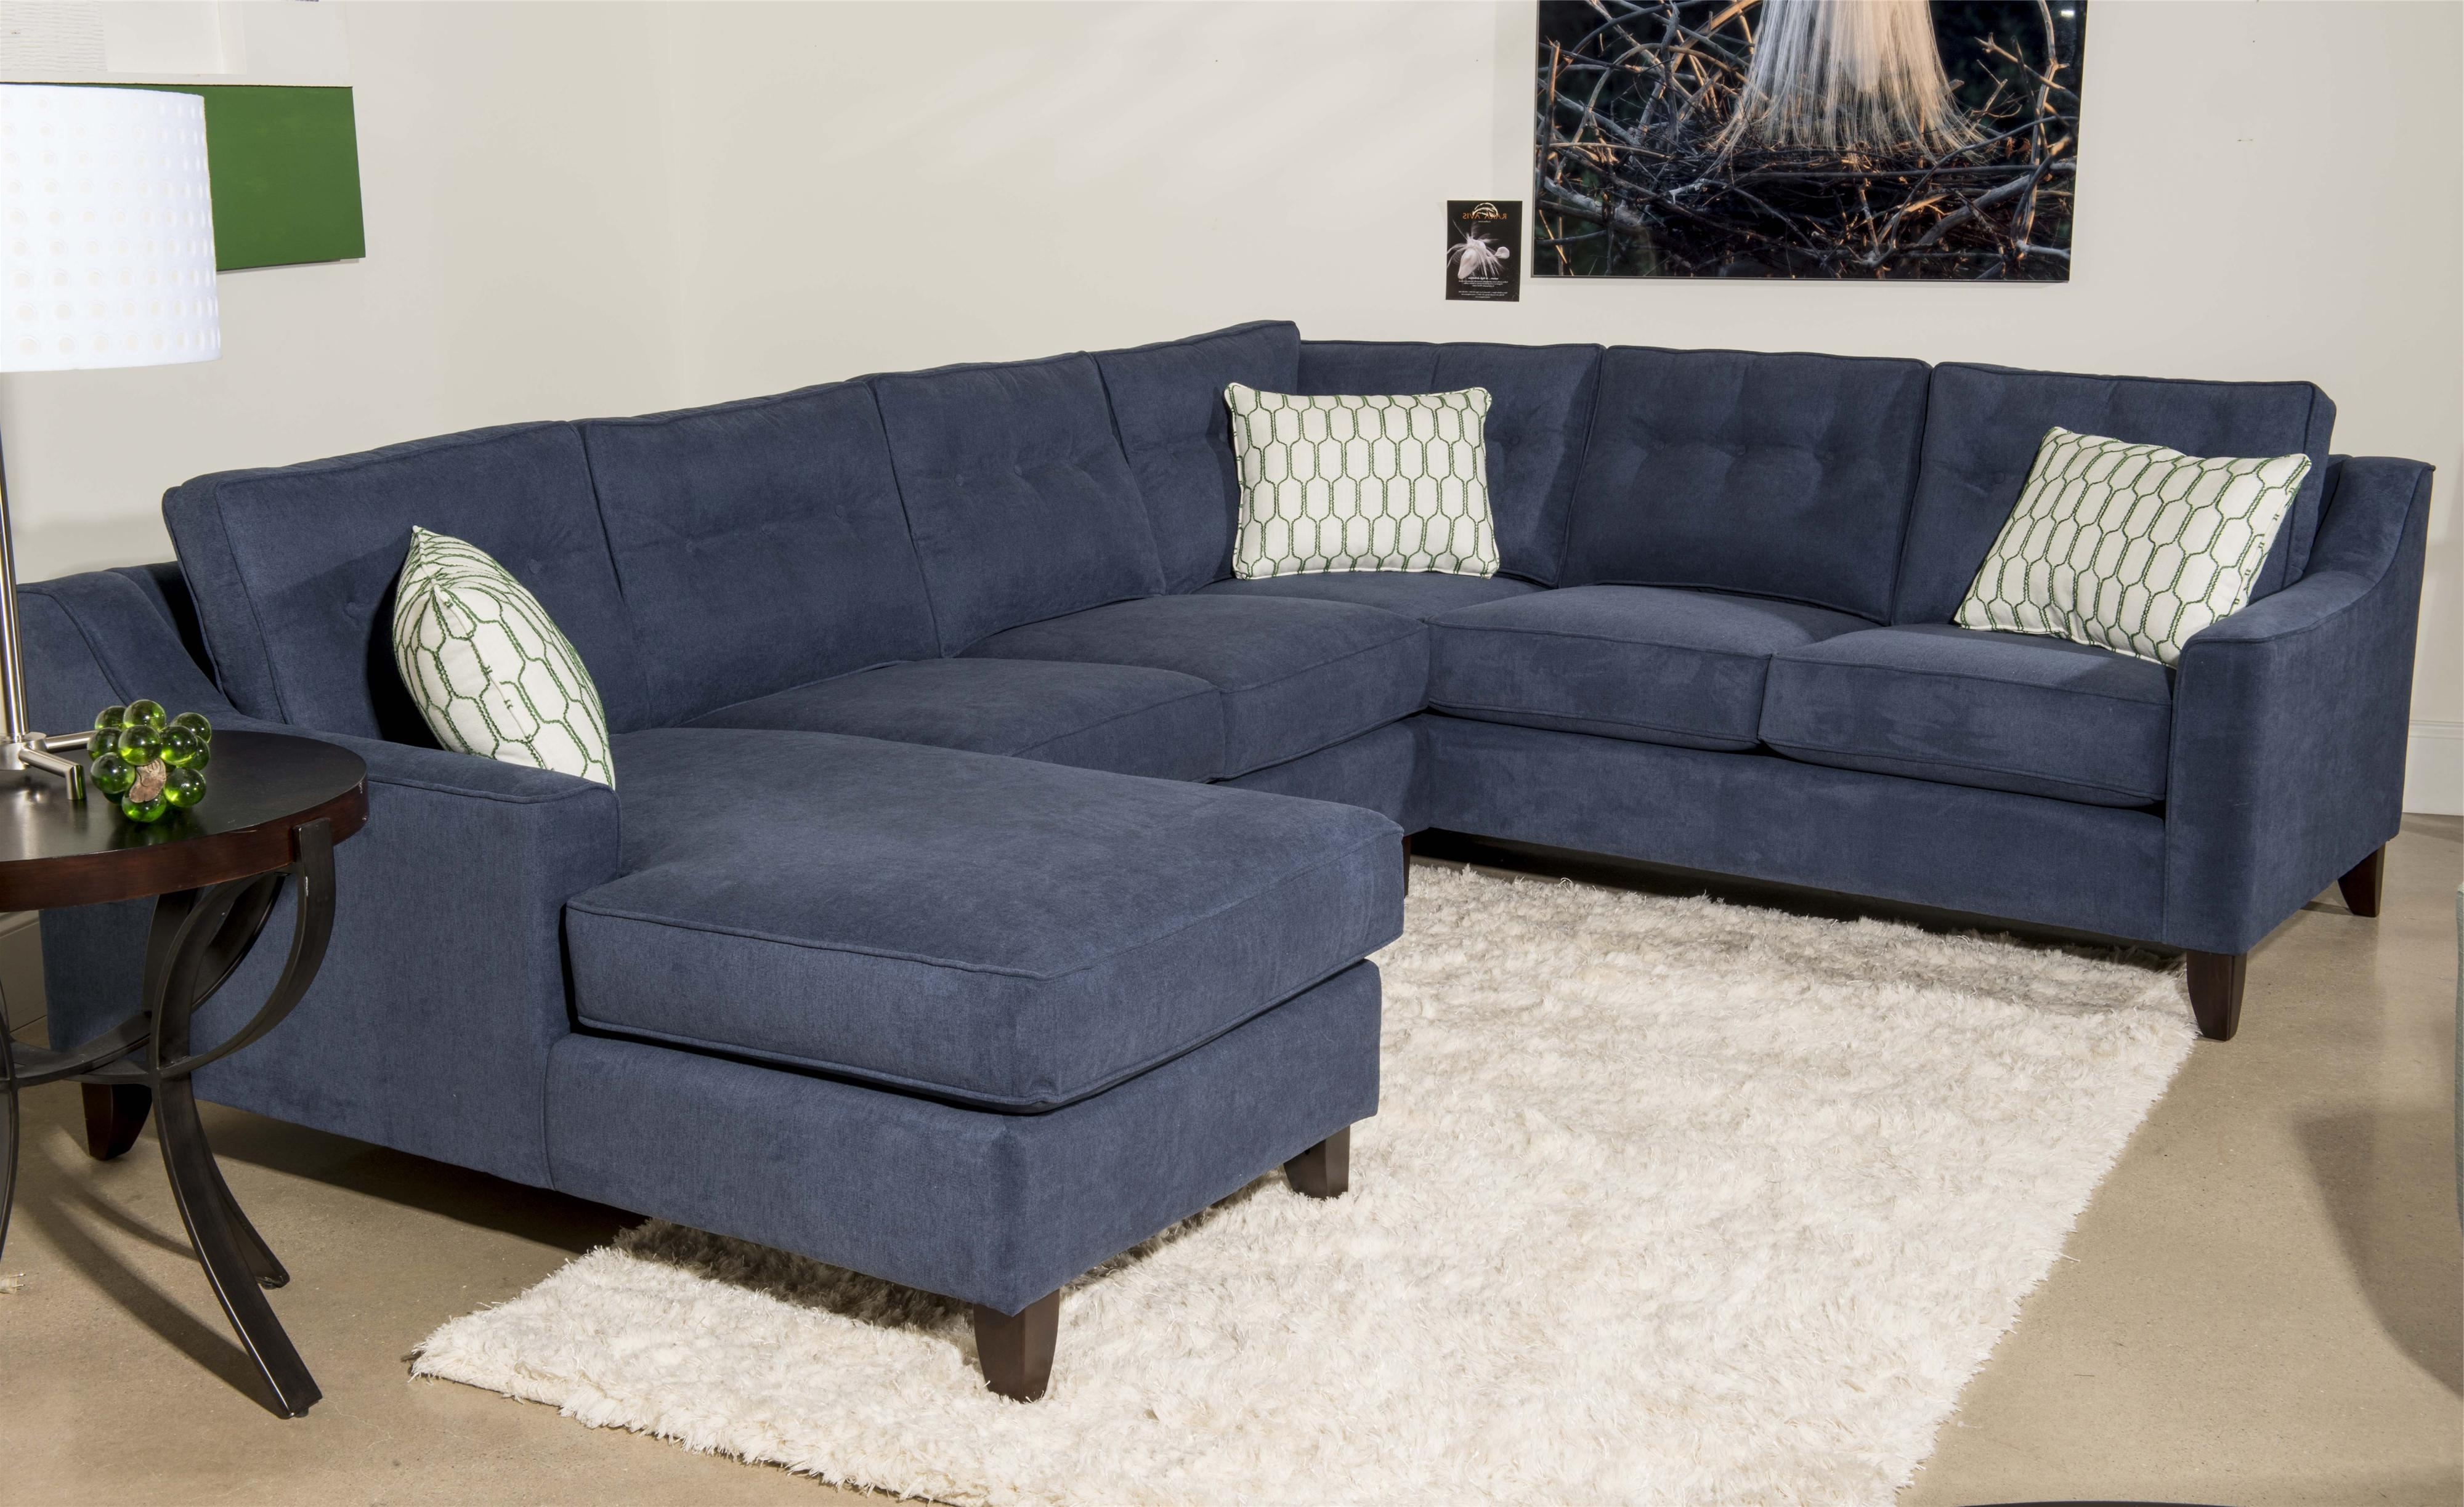 Klaussner Audrina Contemporary 3 Piece Sectional Sofa With Chaise Inside Most Recently Released Sectional Chaise Sofas (View 5 of 15)